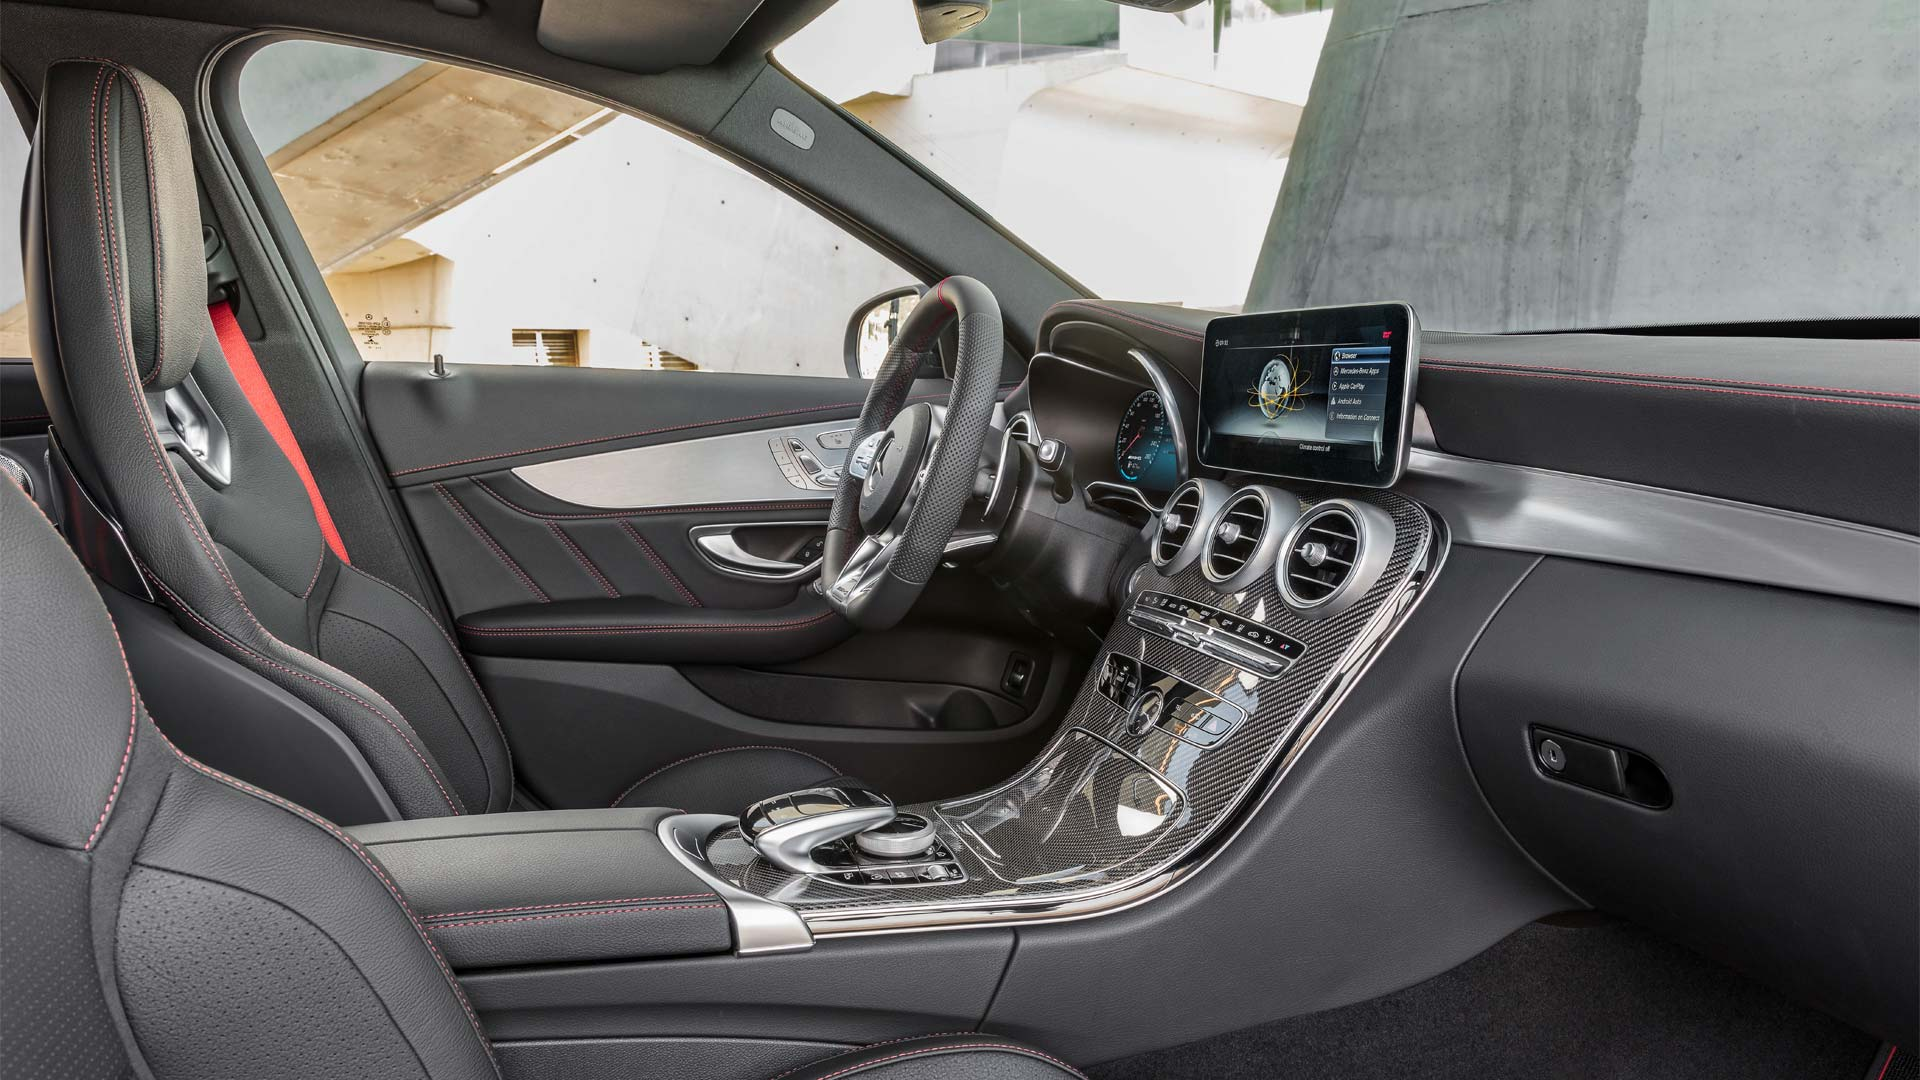 2018-Mercedes-AMG-C-43-4Matic-Interior